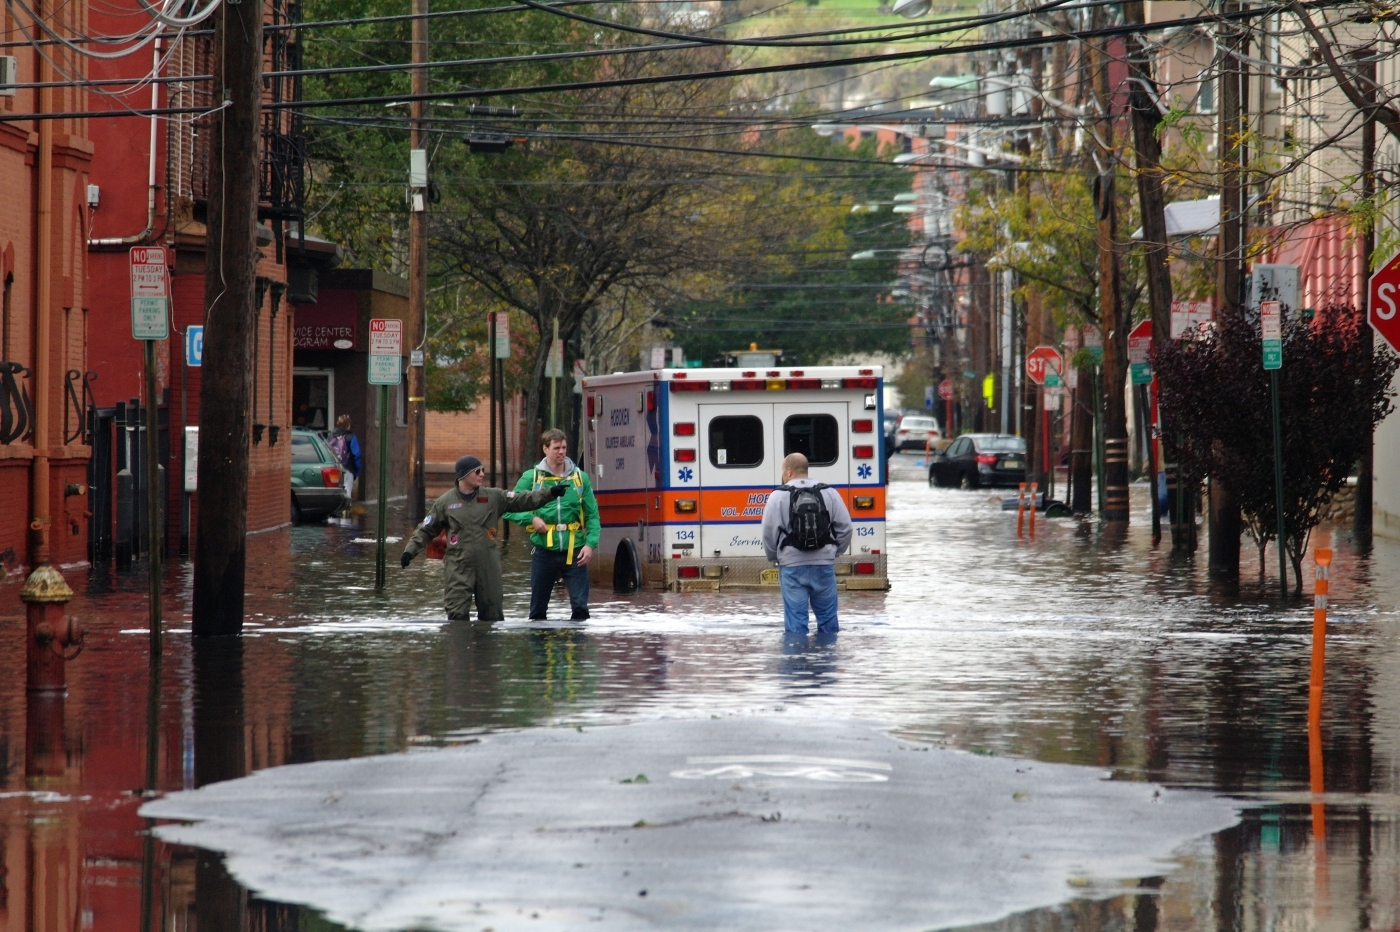 Flooded New York street with stranded ambulance